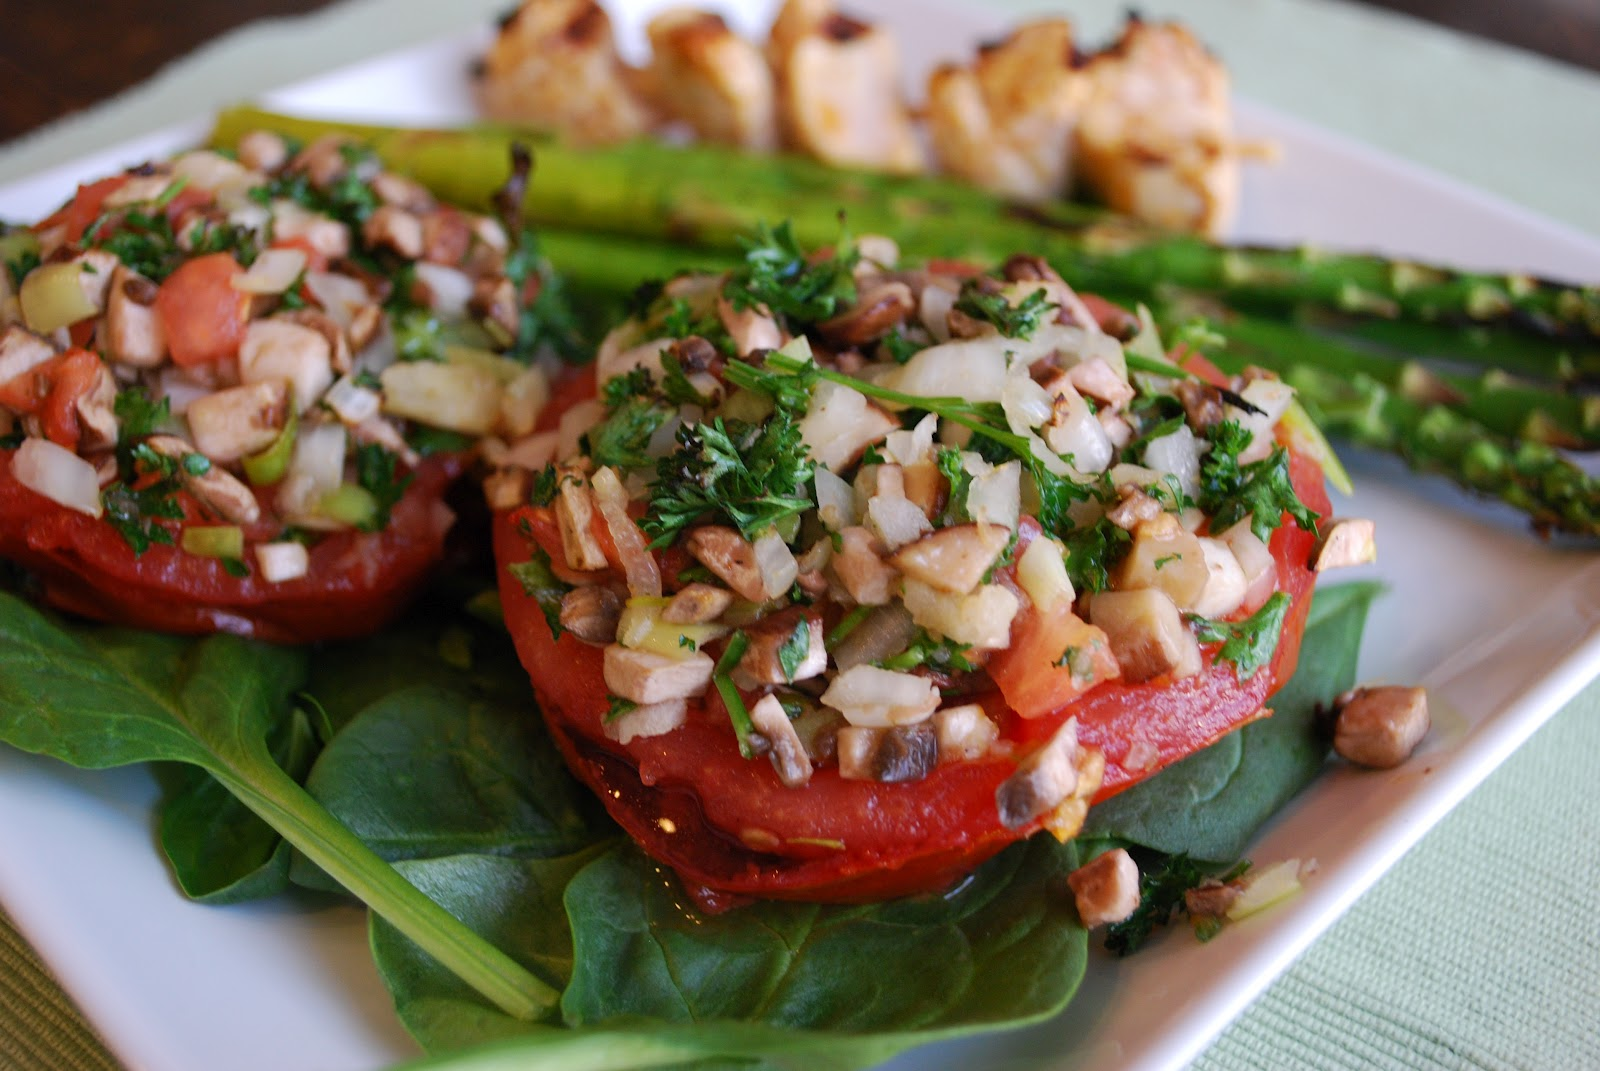 The Spinach Spot: Stuffed Grilled Tomatoes